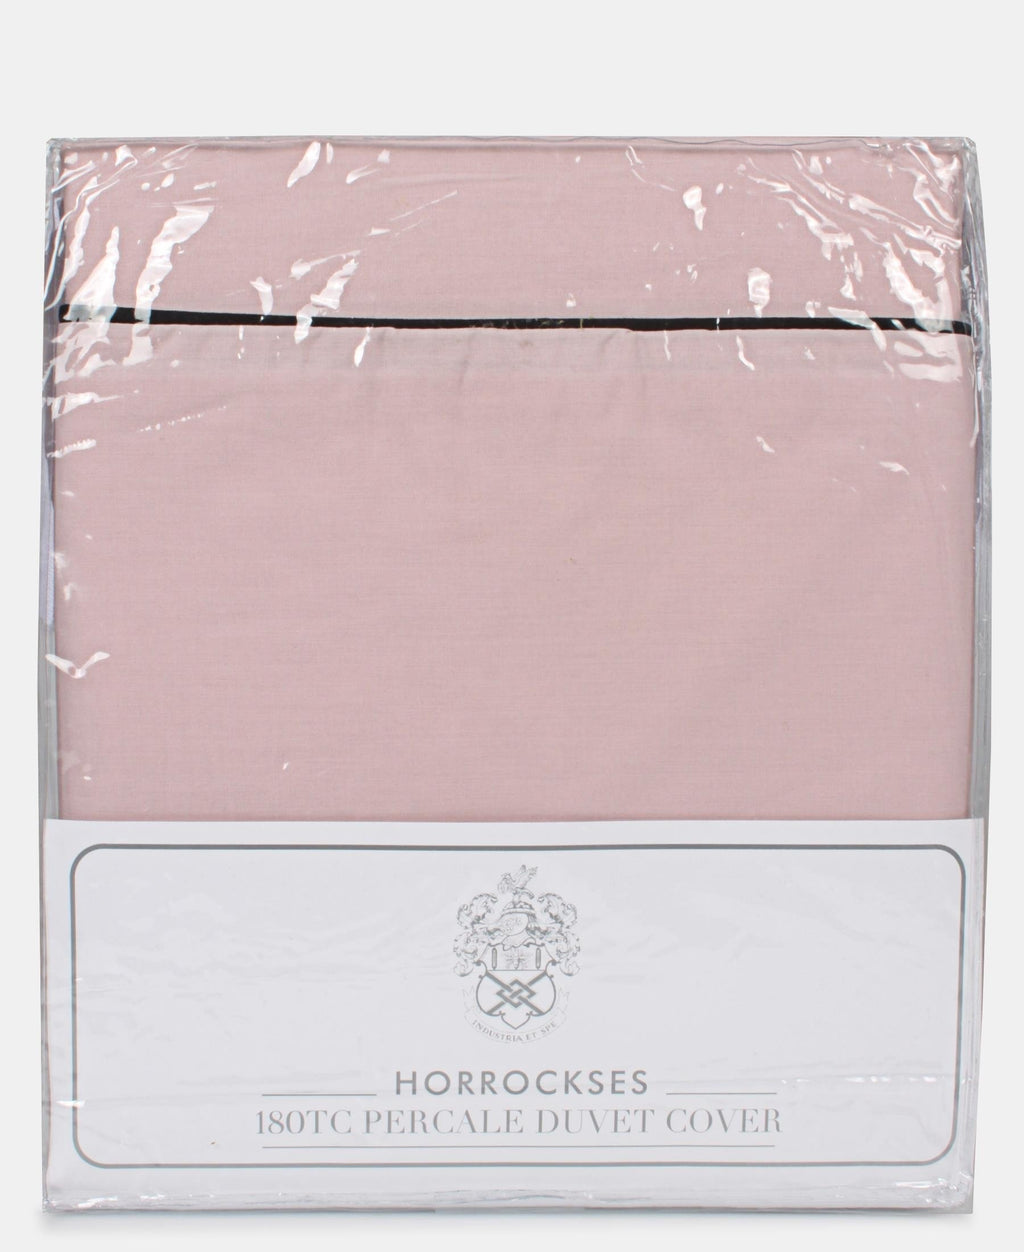 Horrockses 180 Thread Count Duvet Cover With Embellishment - Dusty Pink